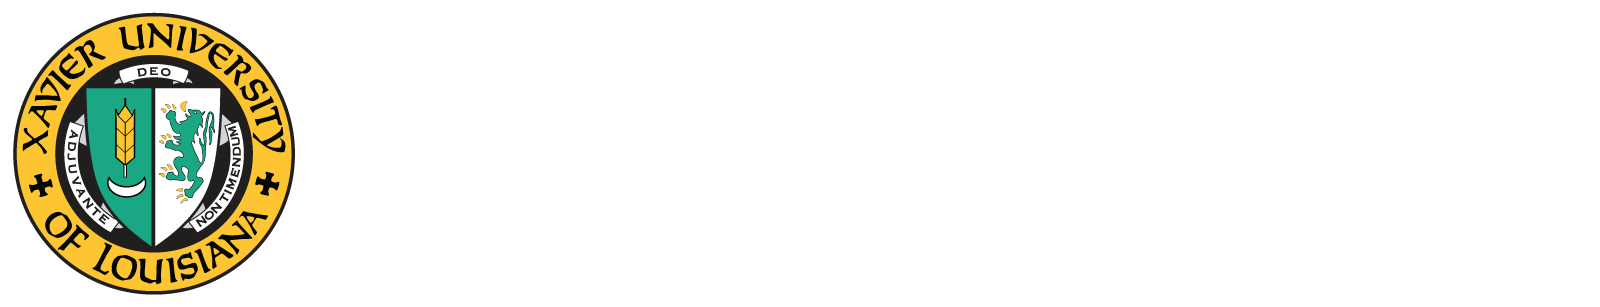 13th Health Dispariites Conference